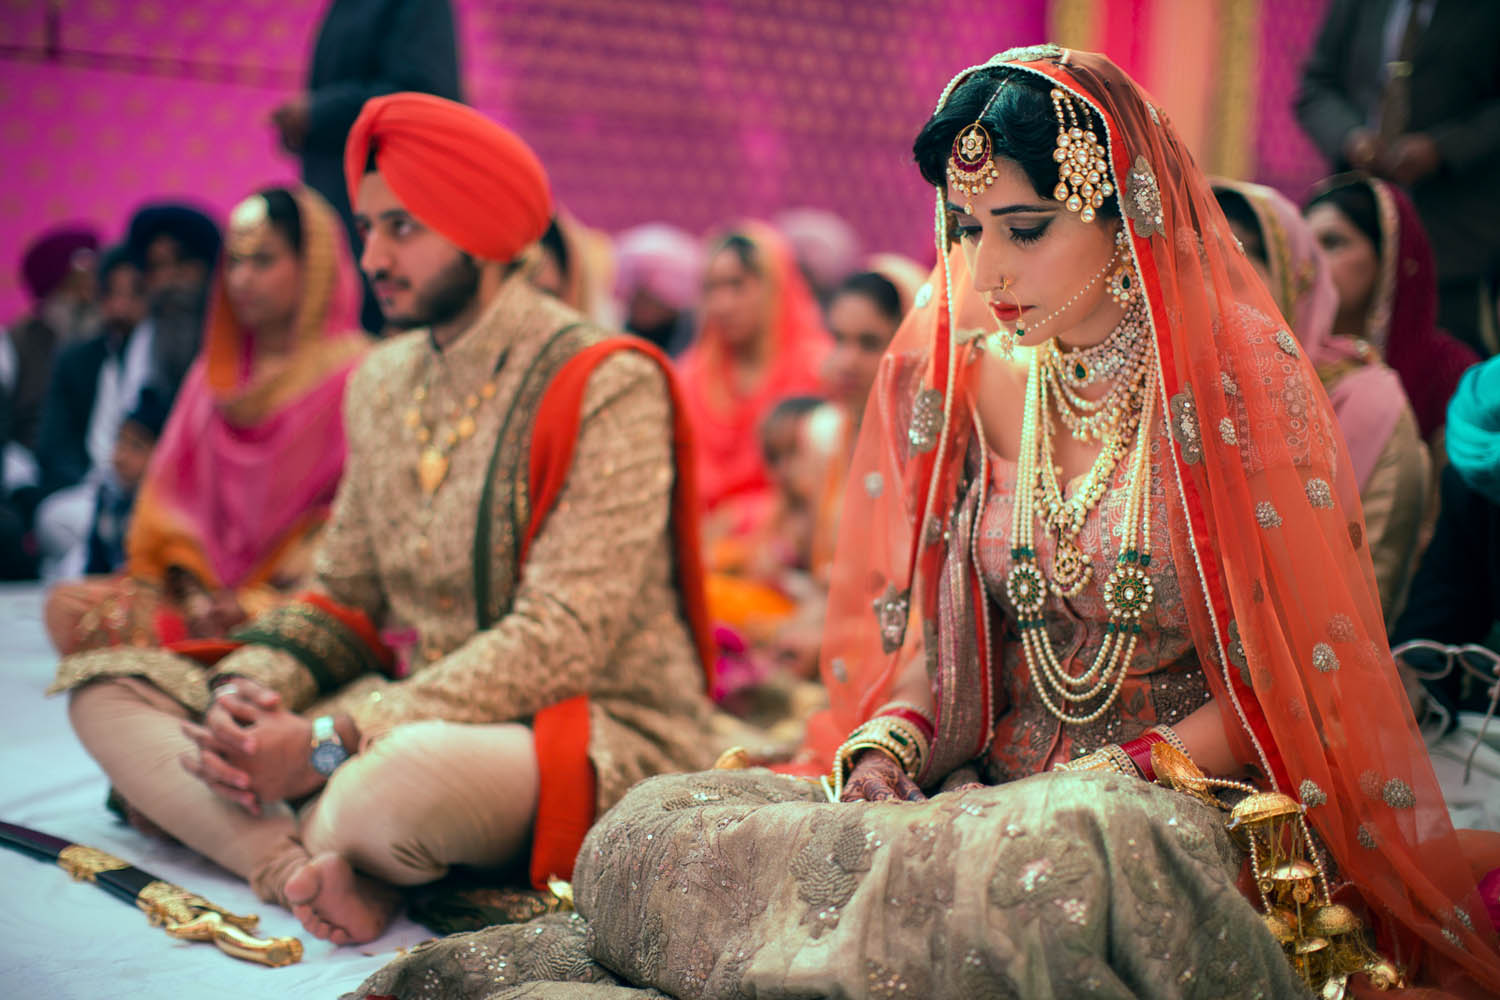 punjab_wedding59.jpg